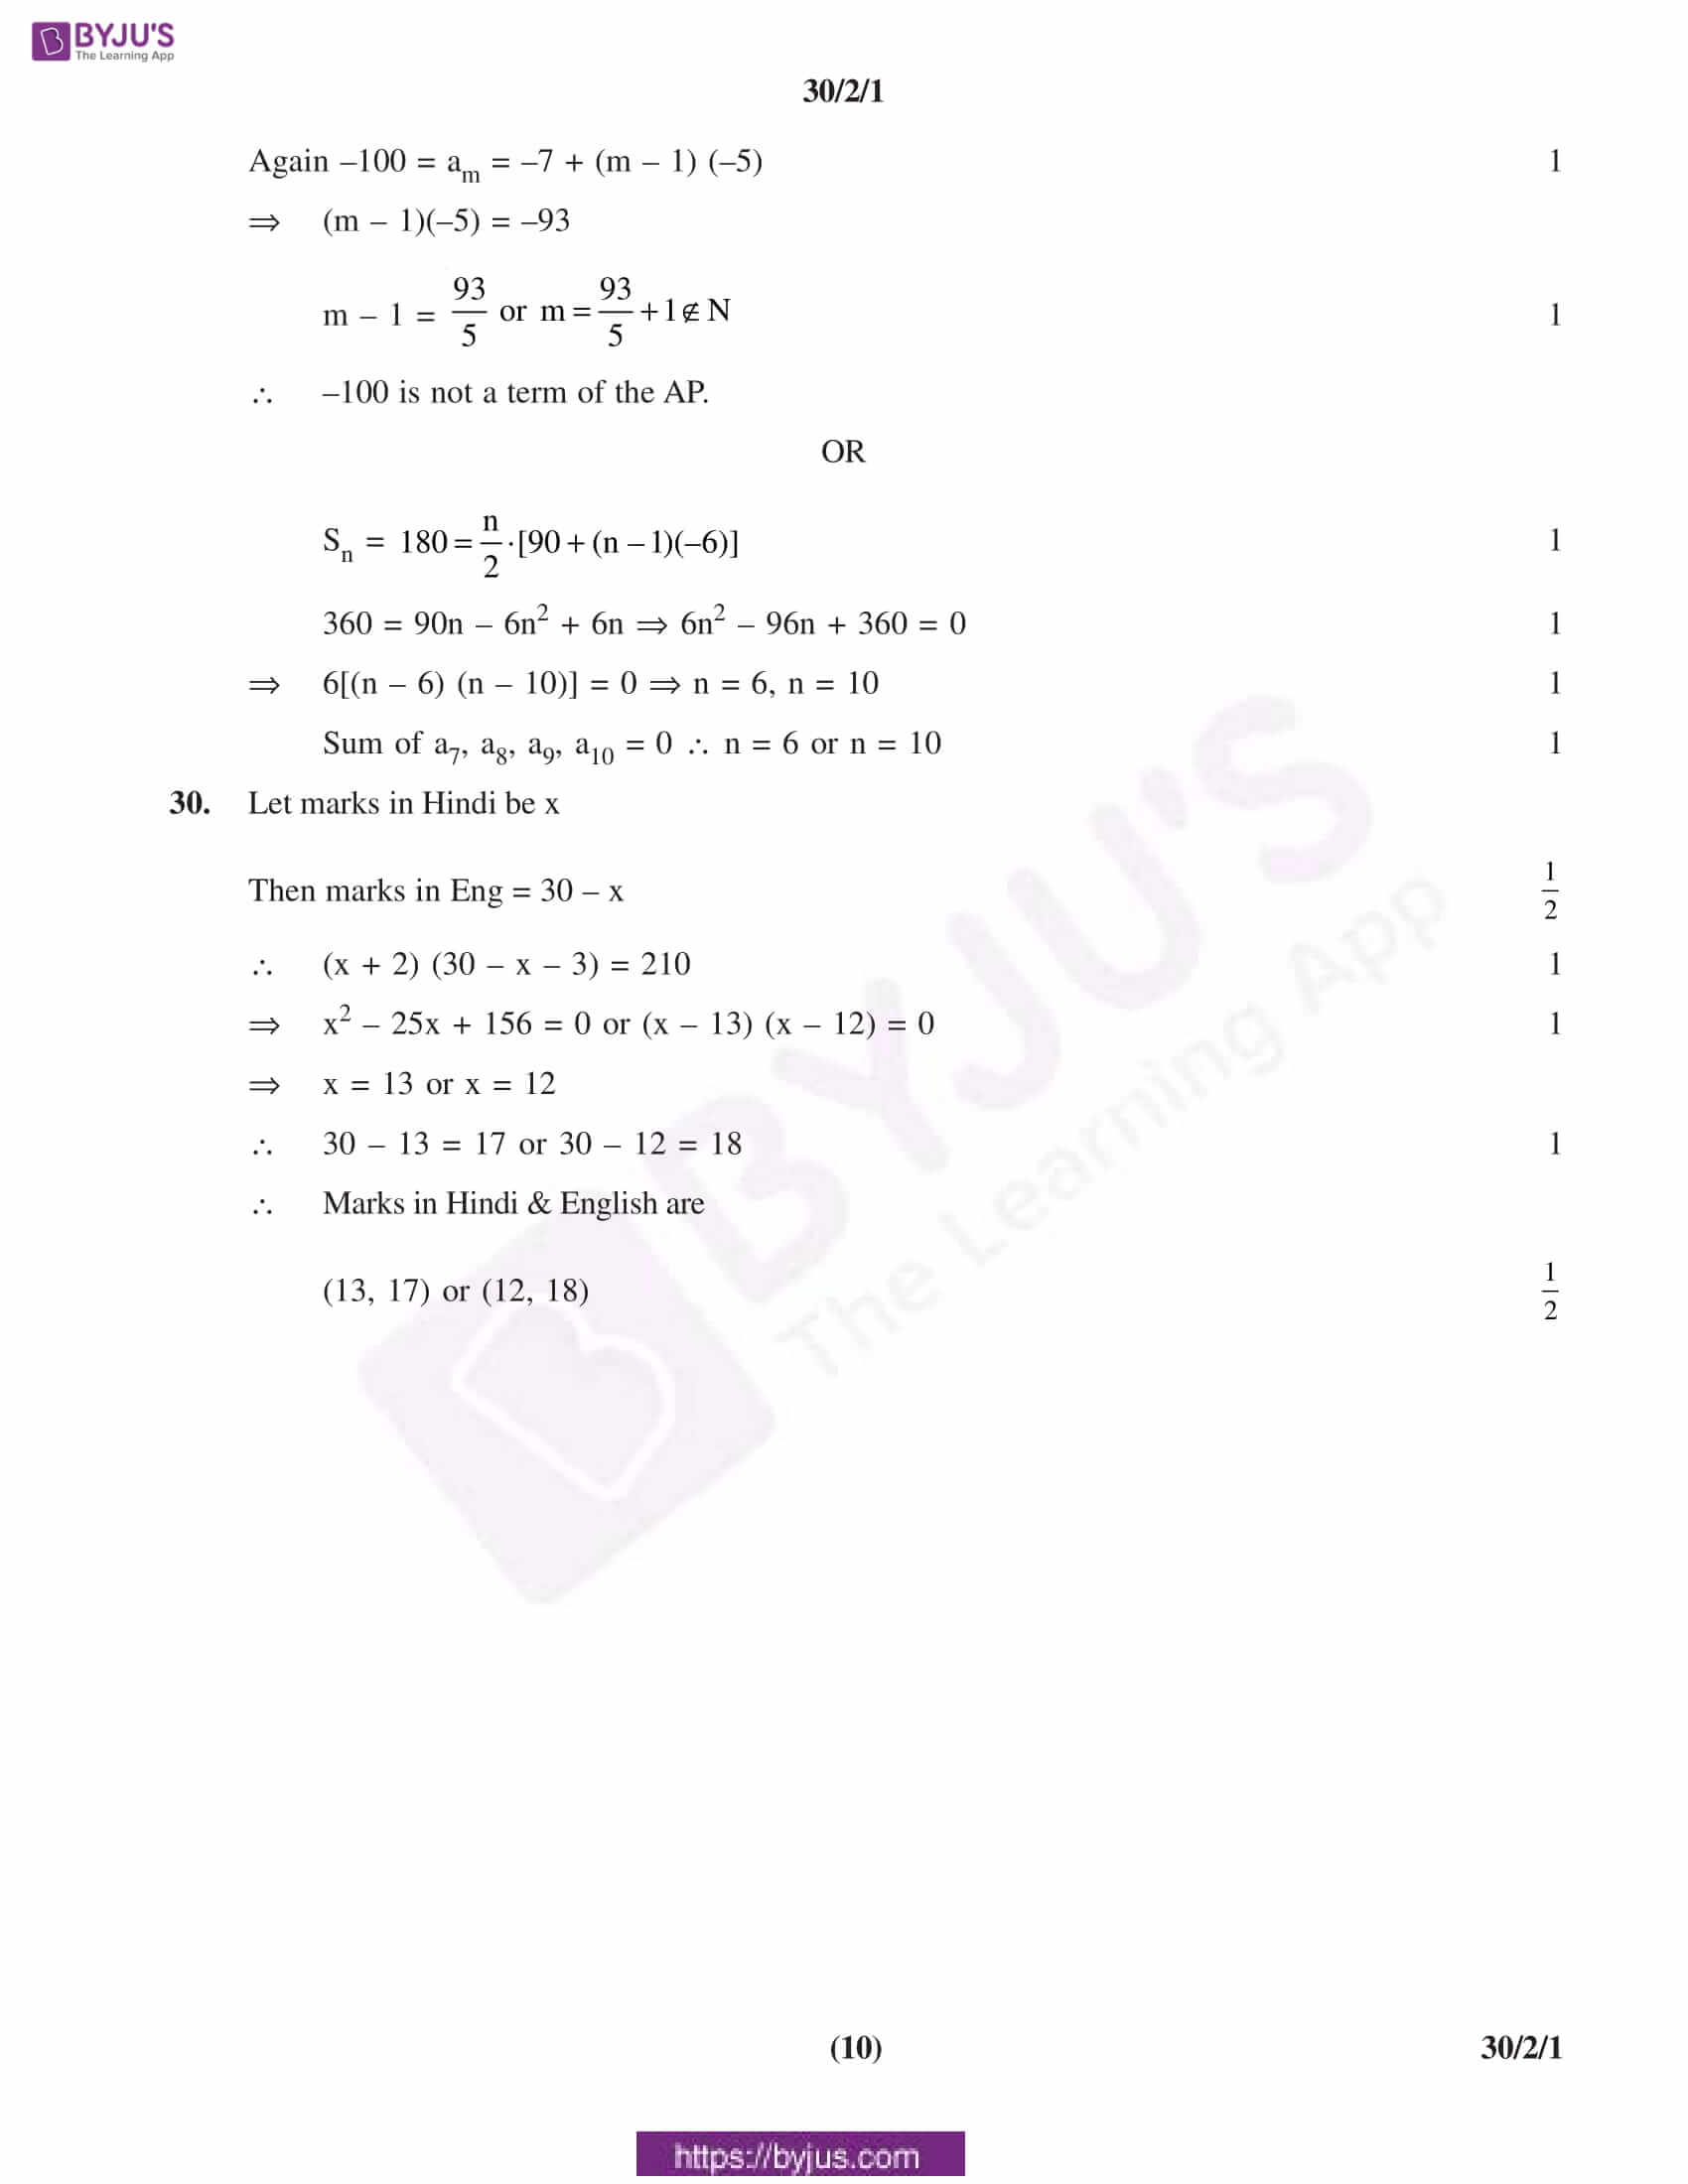 CBSE Class 10 Maths Solution PDF 2019 Set 2 10